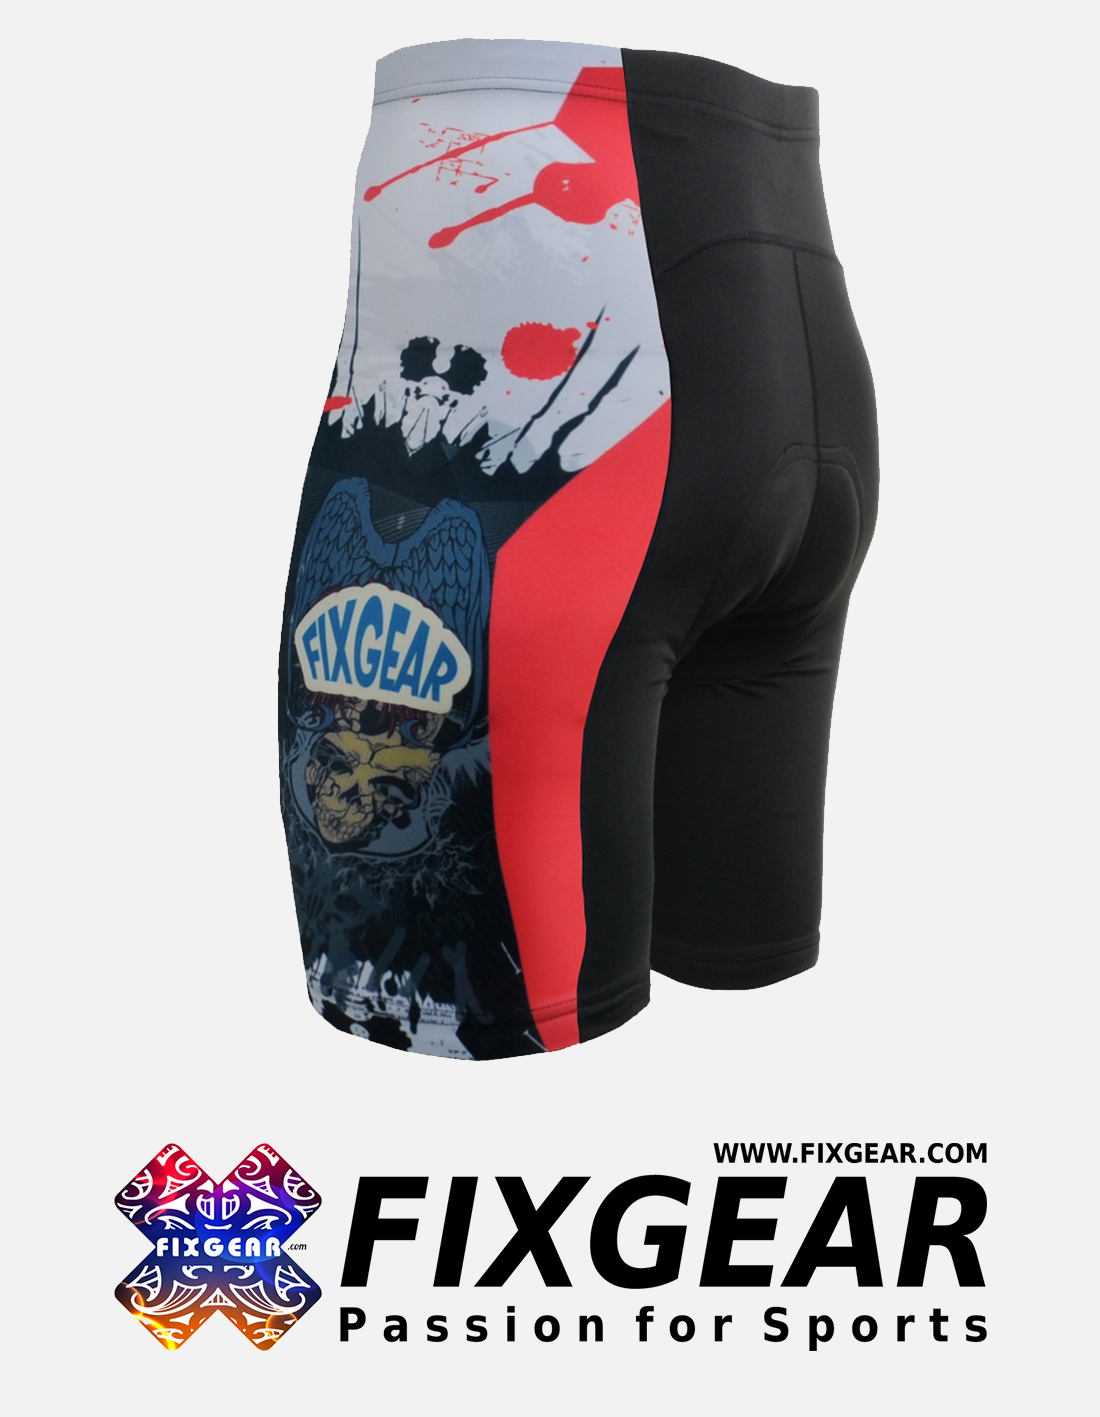 FIXGEAR ST-44 Men's Cycling Cycling Padded Shorts